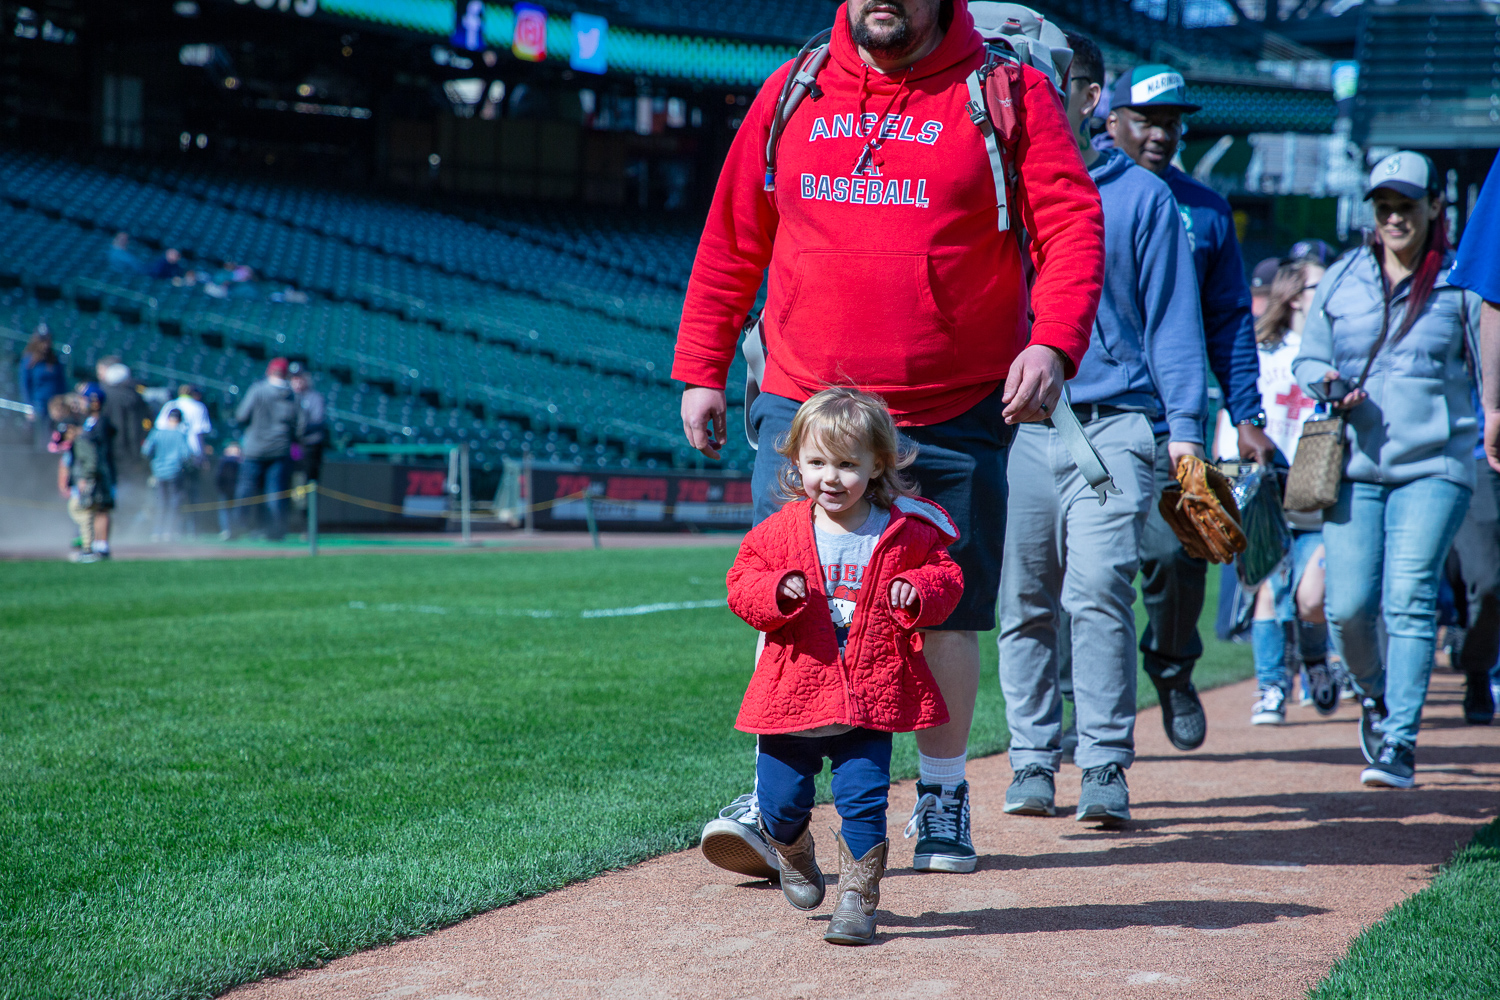 Families, friends, and our Seattle Mariners come together for their FanFest event for the 20th time in club history. Fans of all ages had the pleasure in running the bases, playing catch across the field, and receiving autographs from their favorite Mariners in Seattle's T-Mobile Park. (Image: Daniel Macadangdang / Seattle Refined)